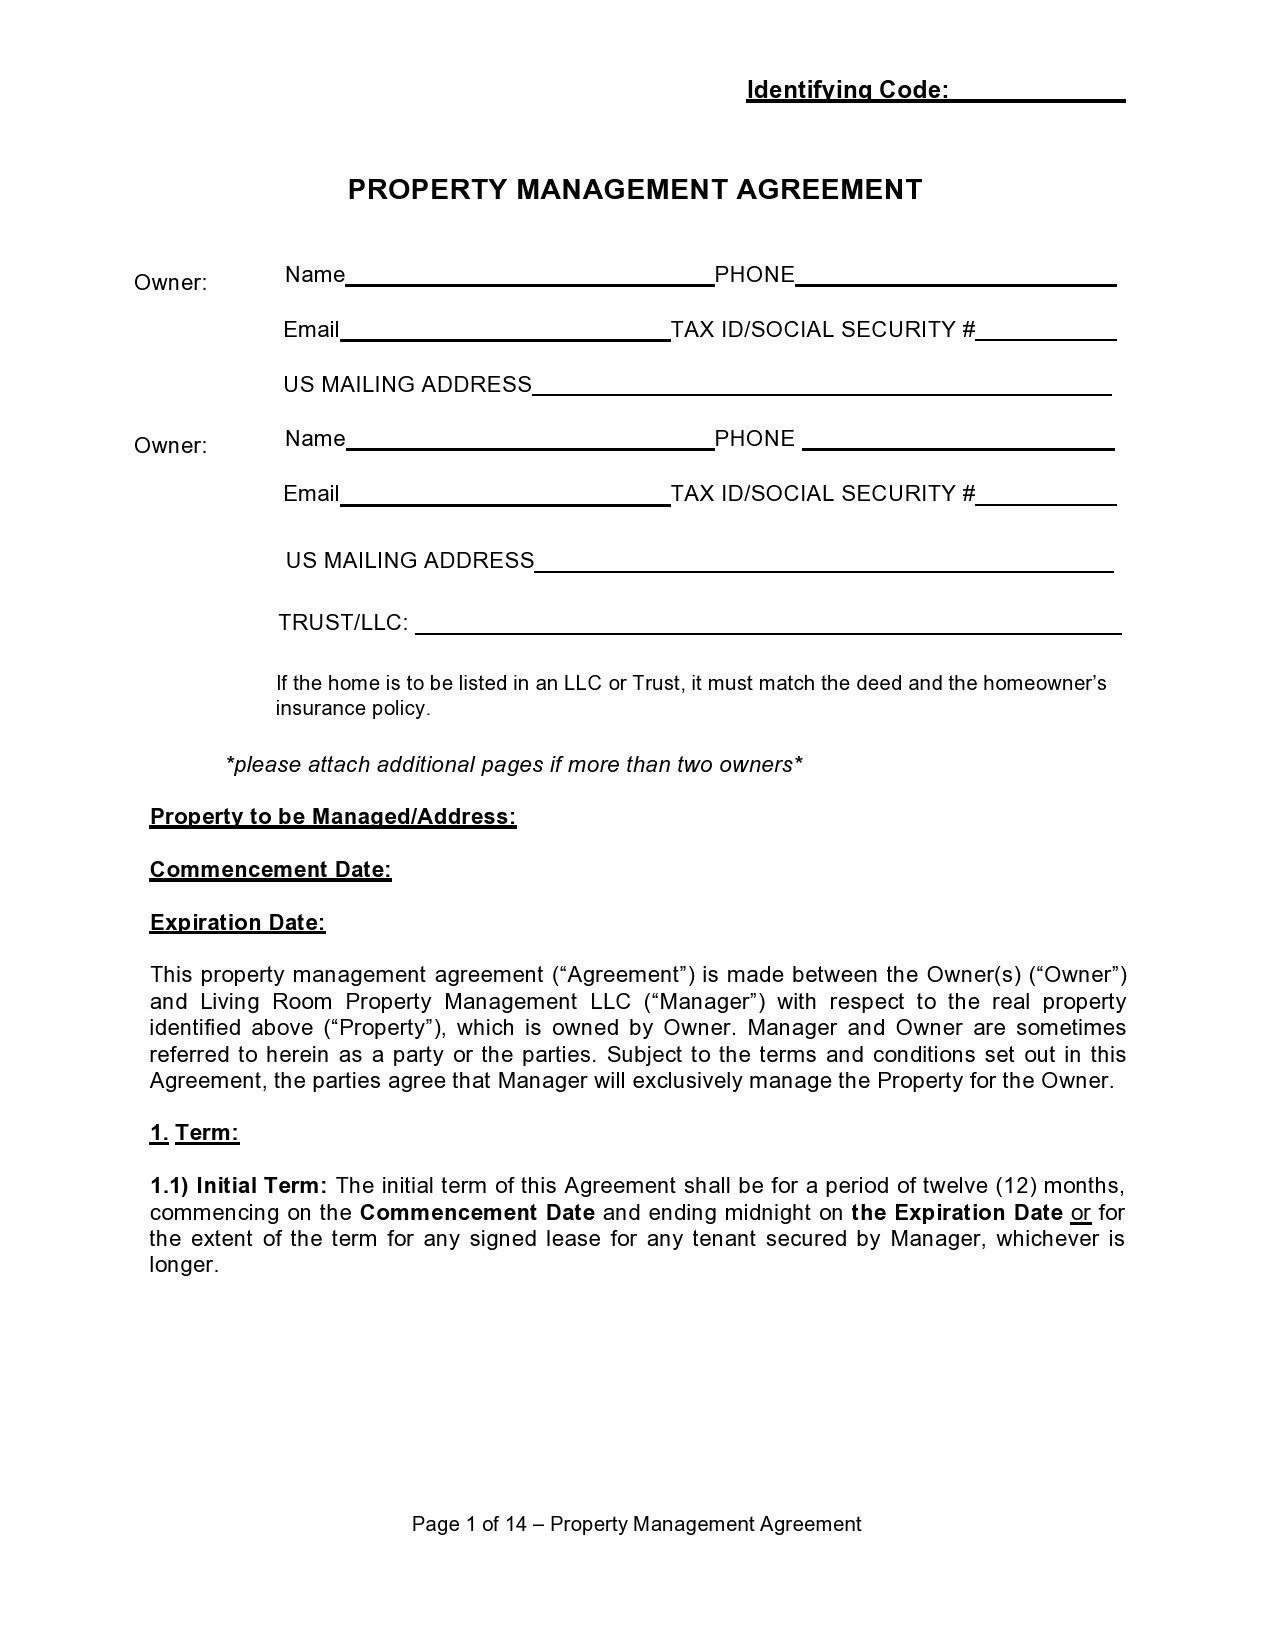 Free property management agreement 03